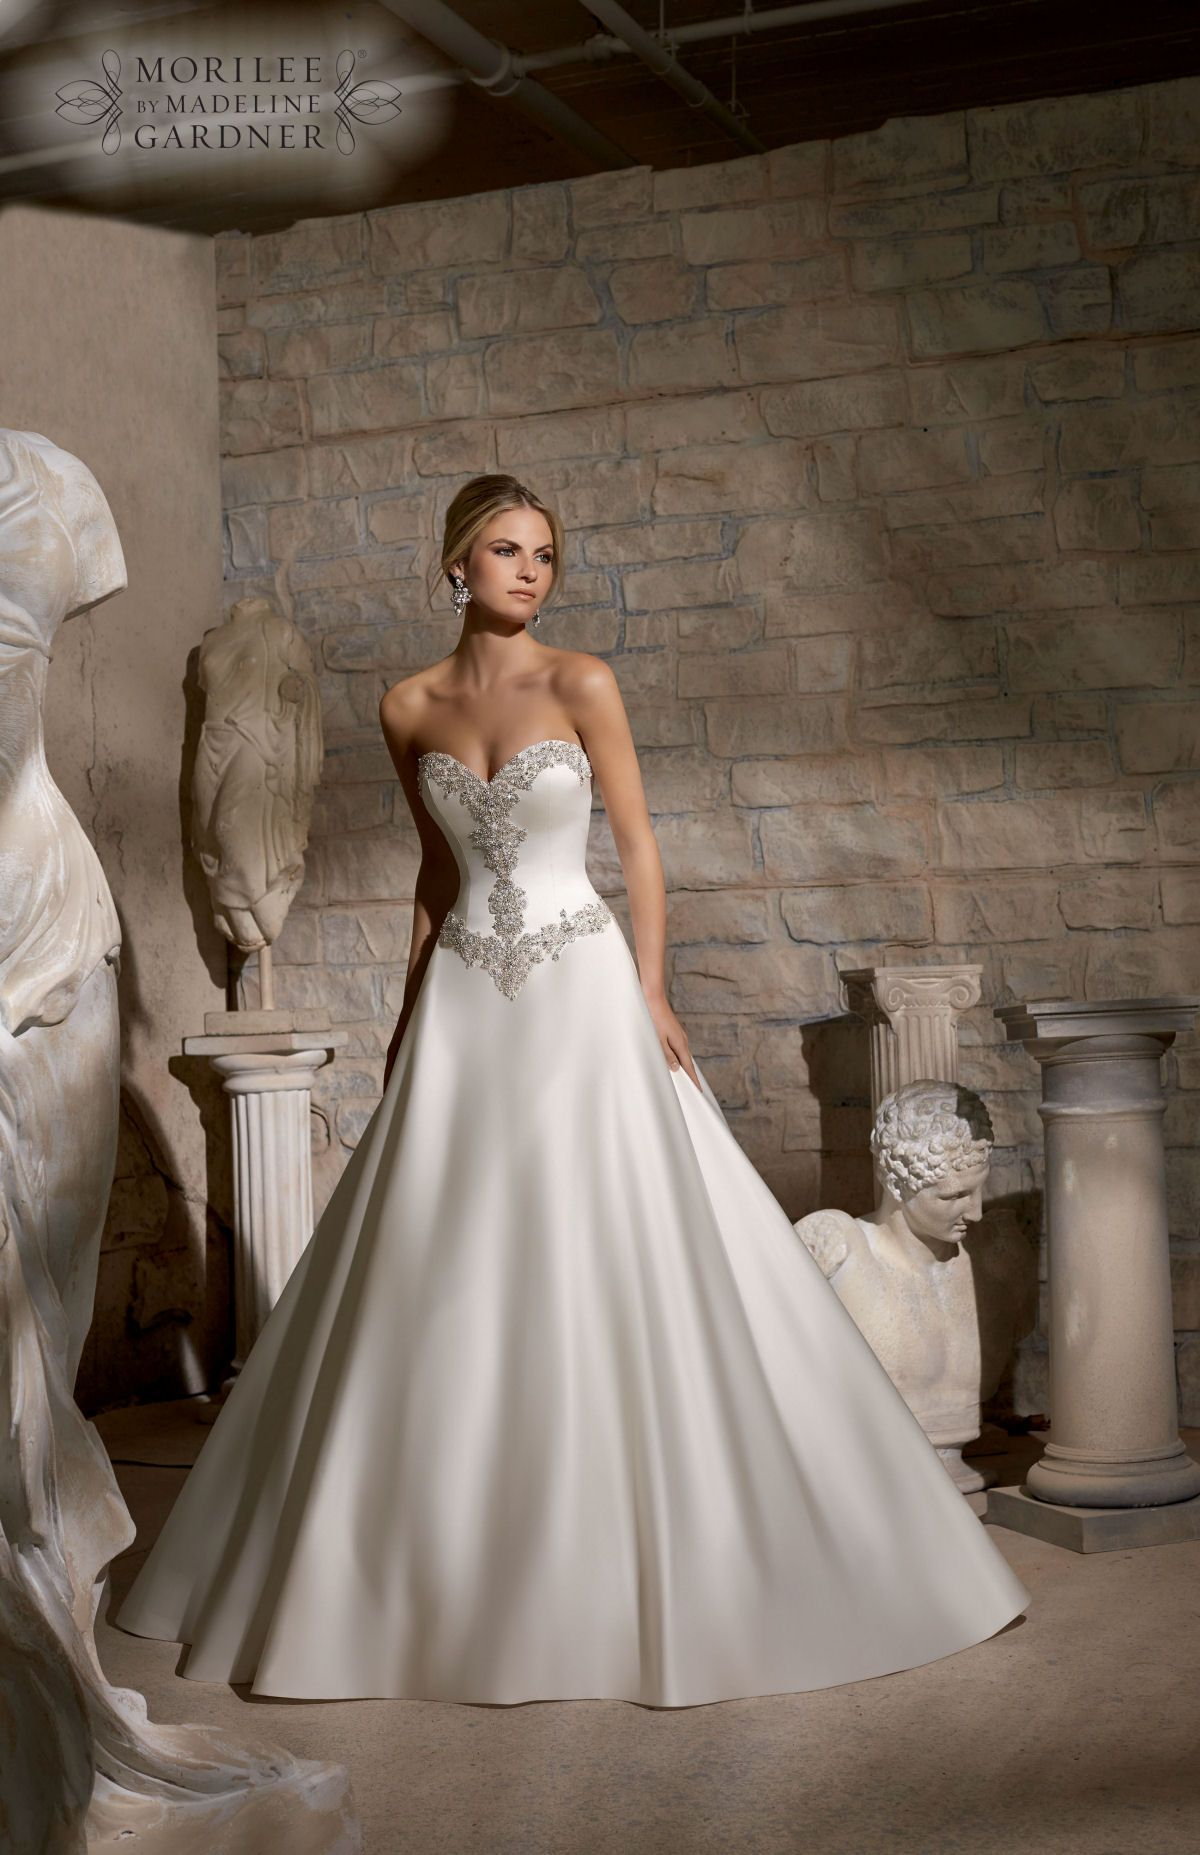 The mori lee collection is here weddingdress from mori